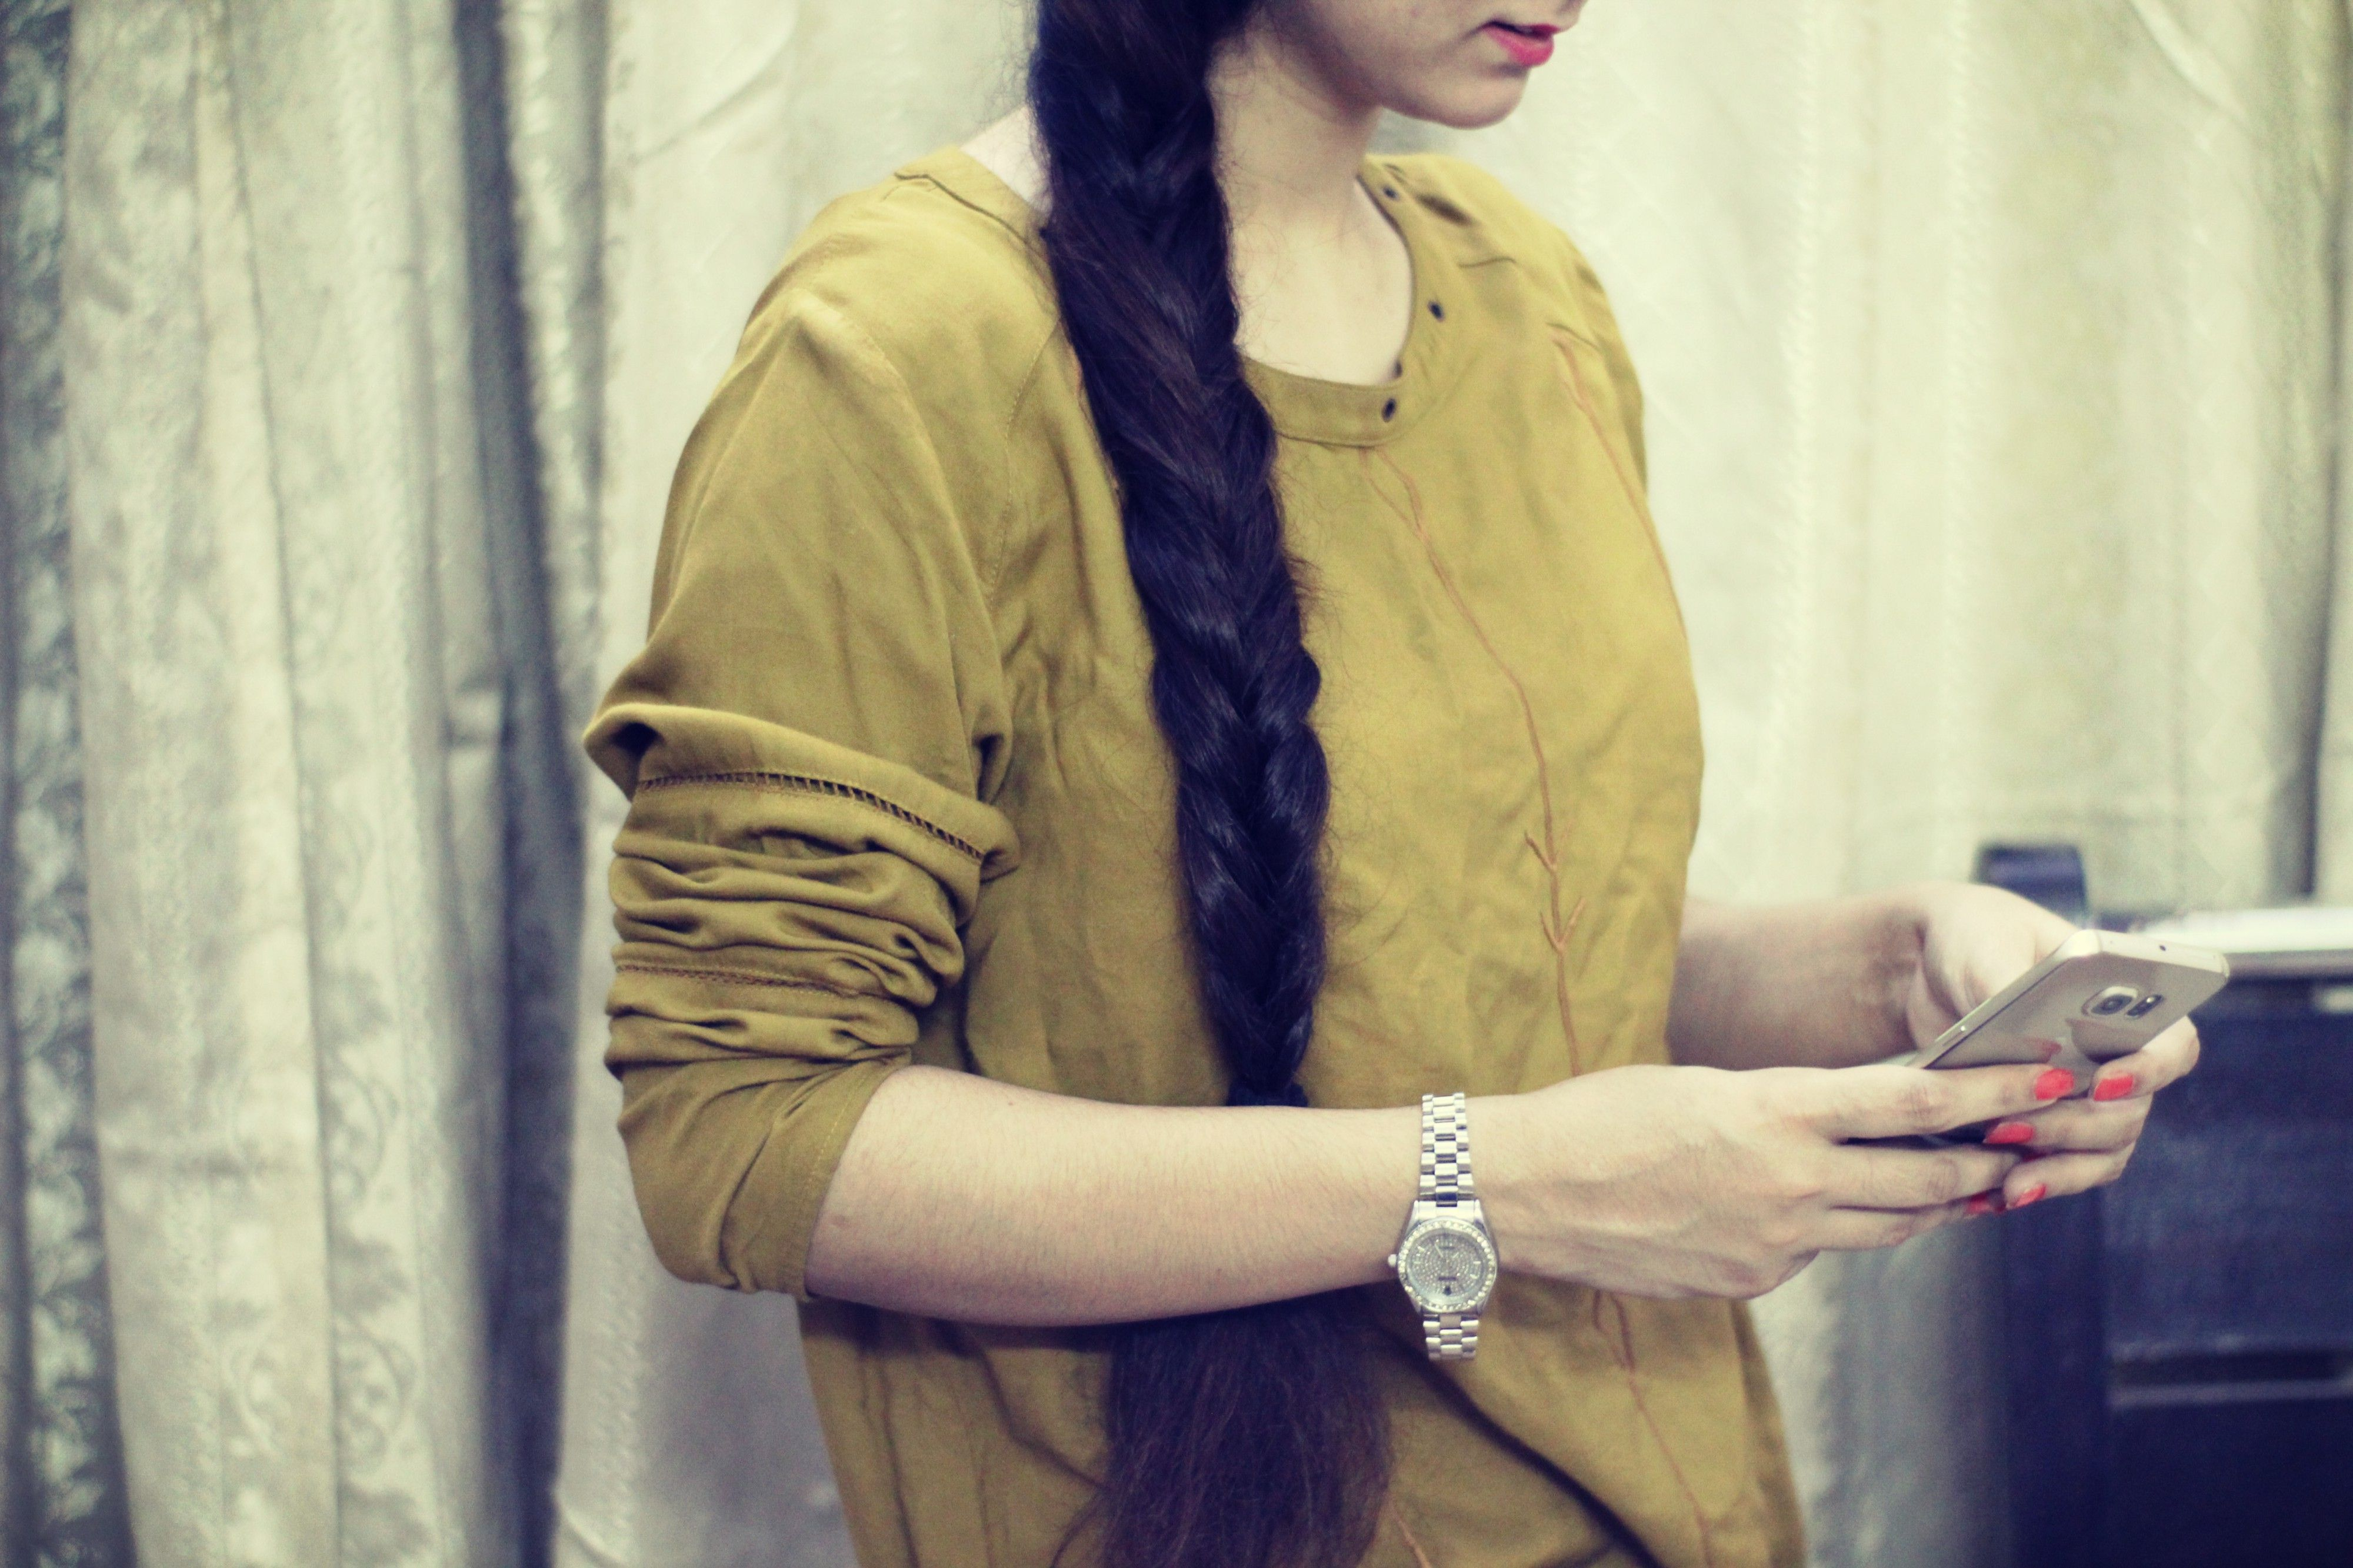 12 Fun And Easy Hair Styles For Your Daily Routine   Easy hairstyles, Hair styles, Style